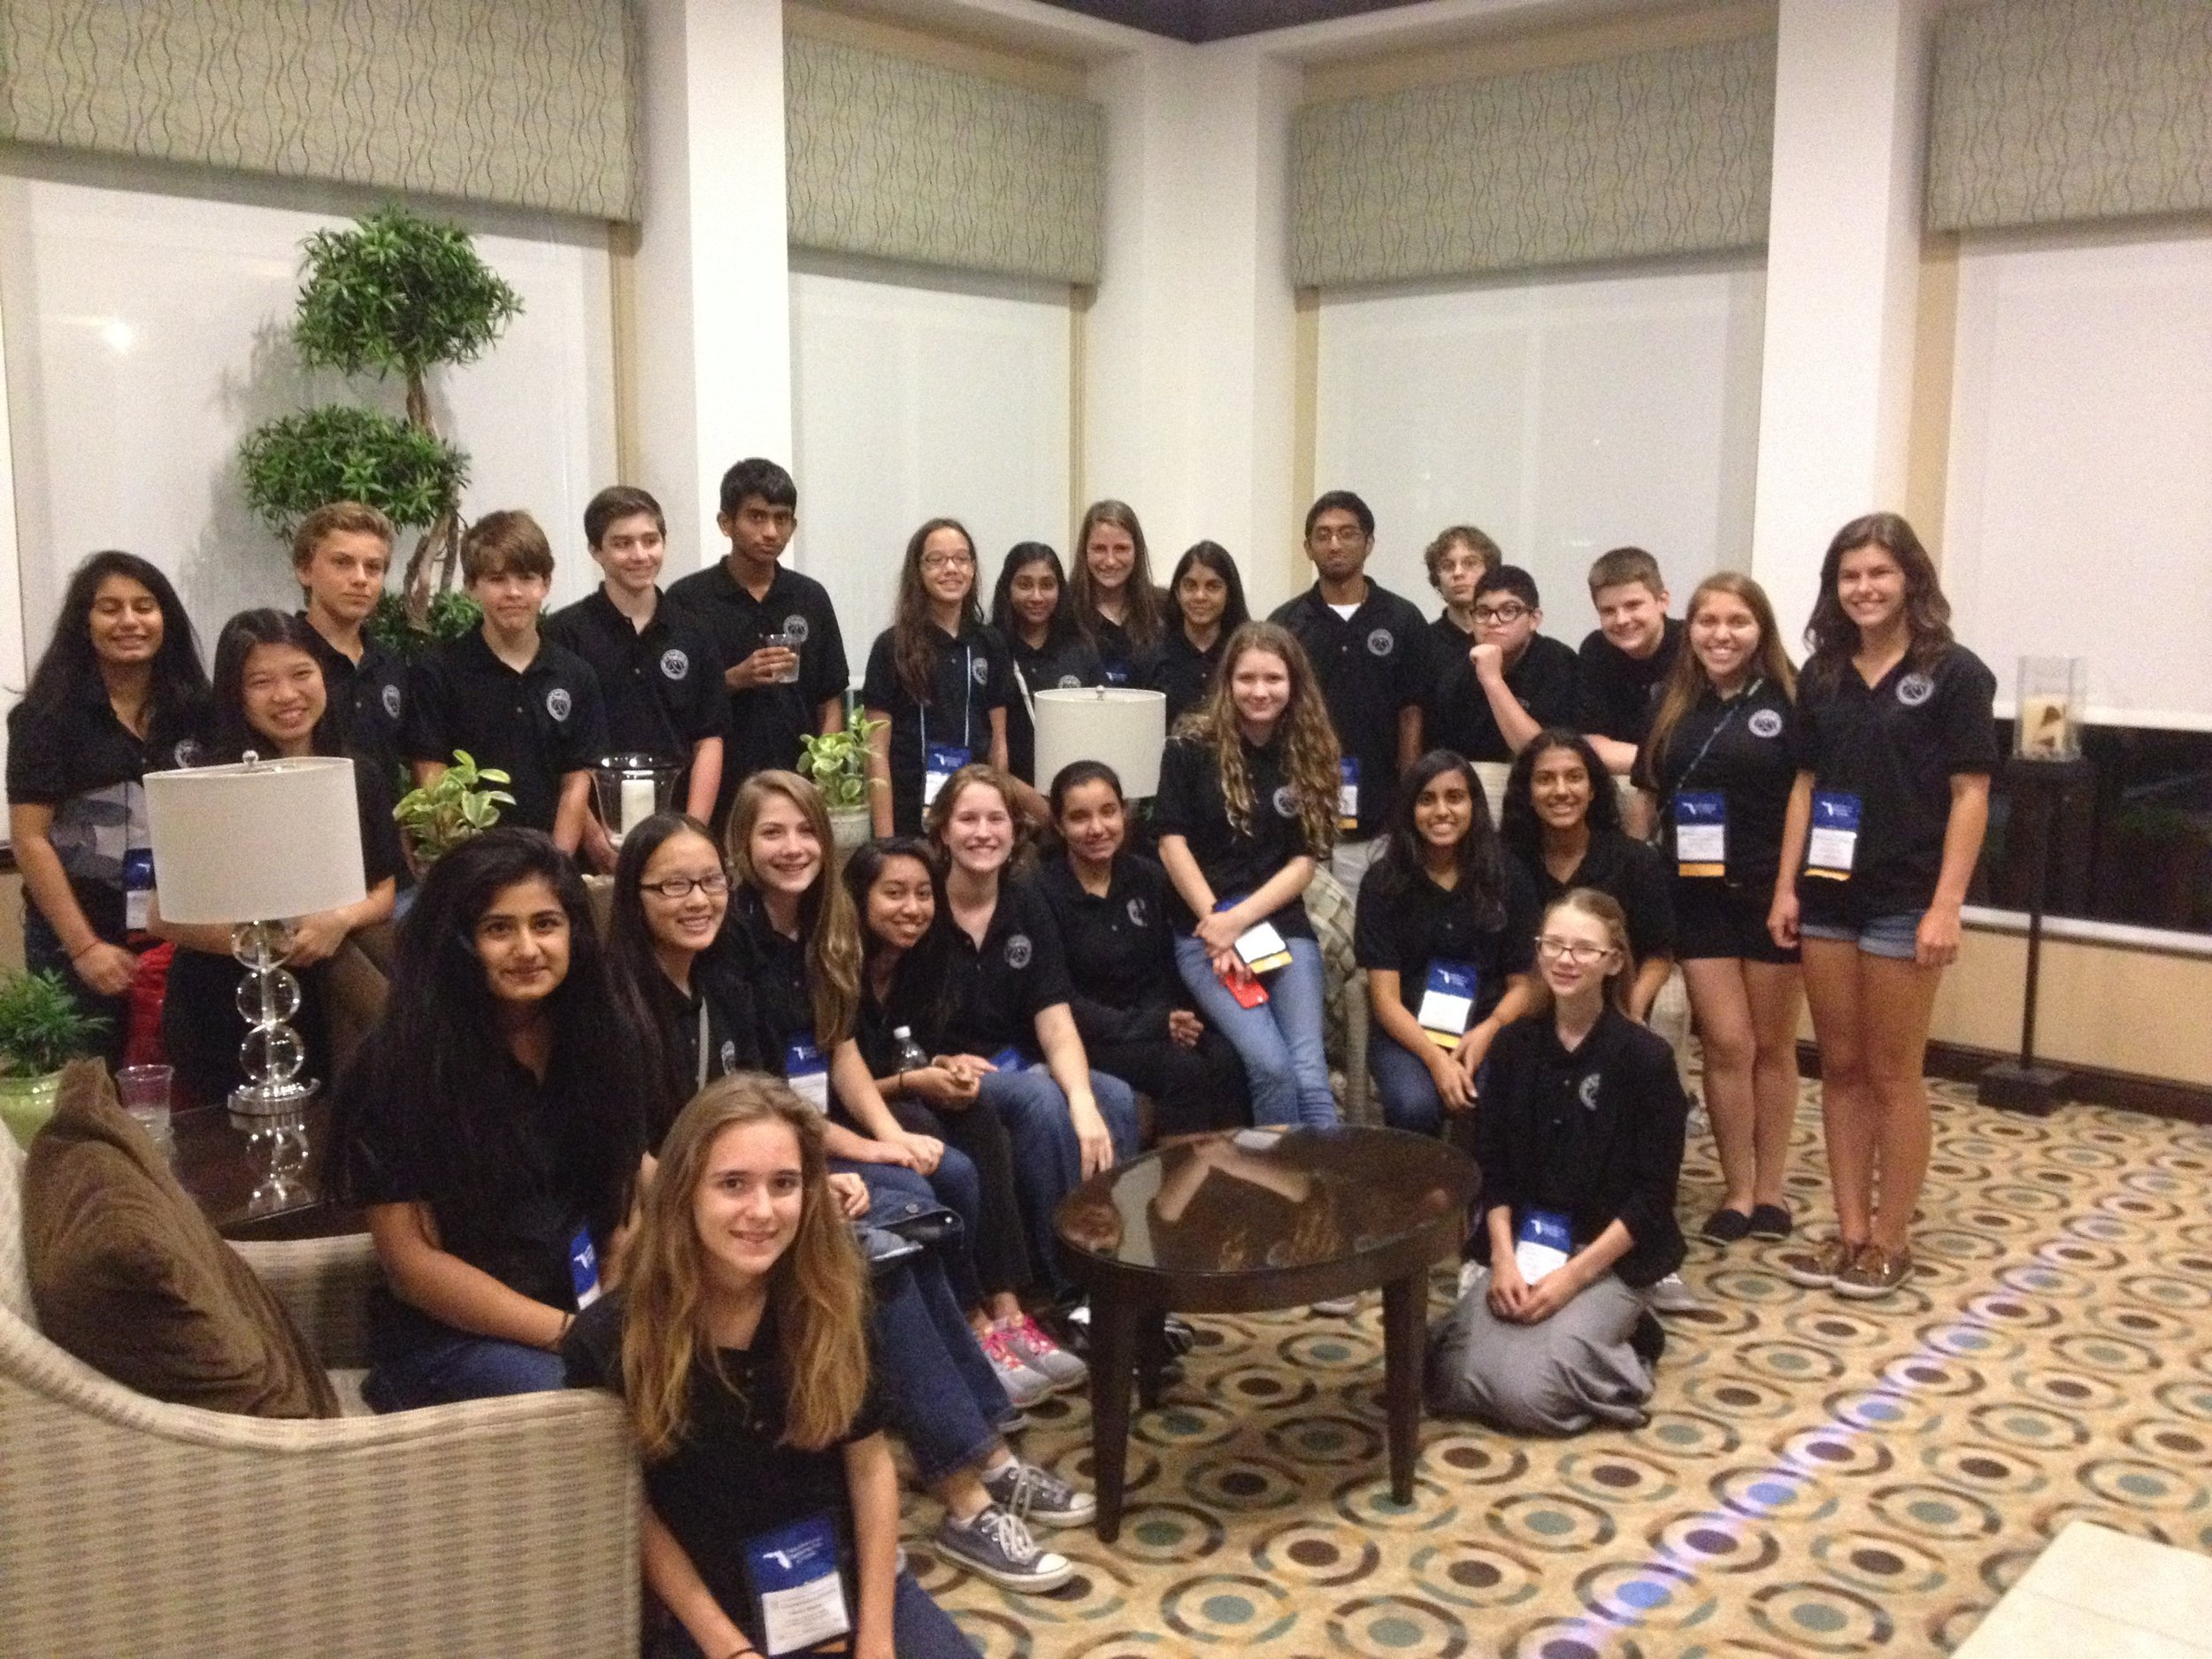 The 2015 Ying Delegation to the Florida Science and Engineering Fair